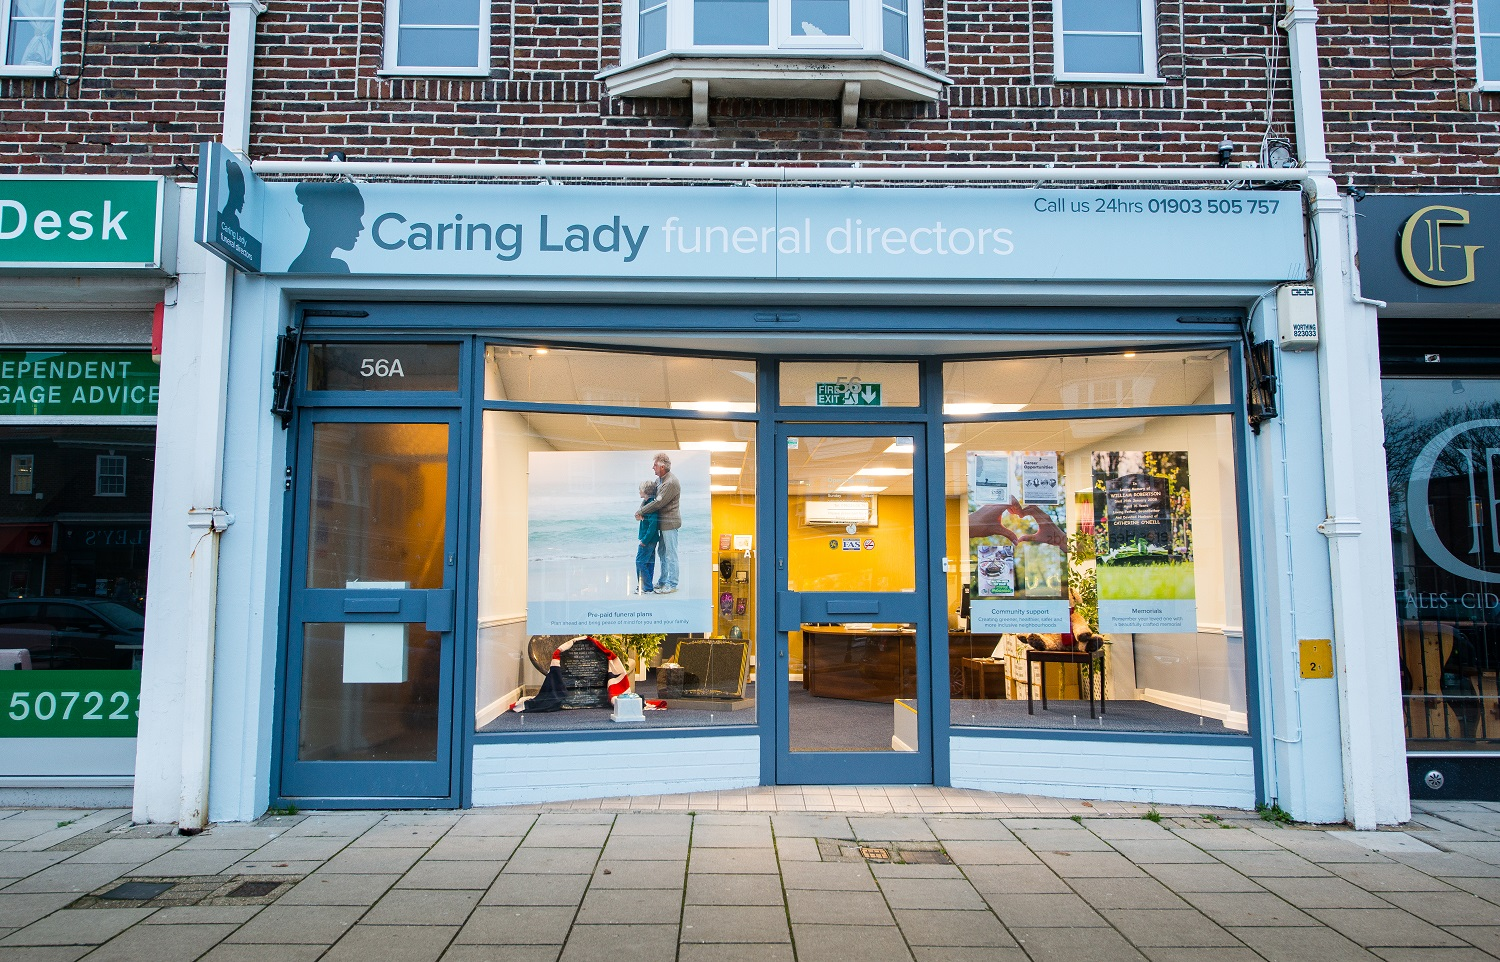 Caring Lady Funeral Directors Goring by Sea